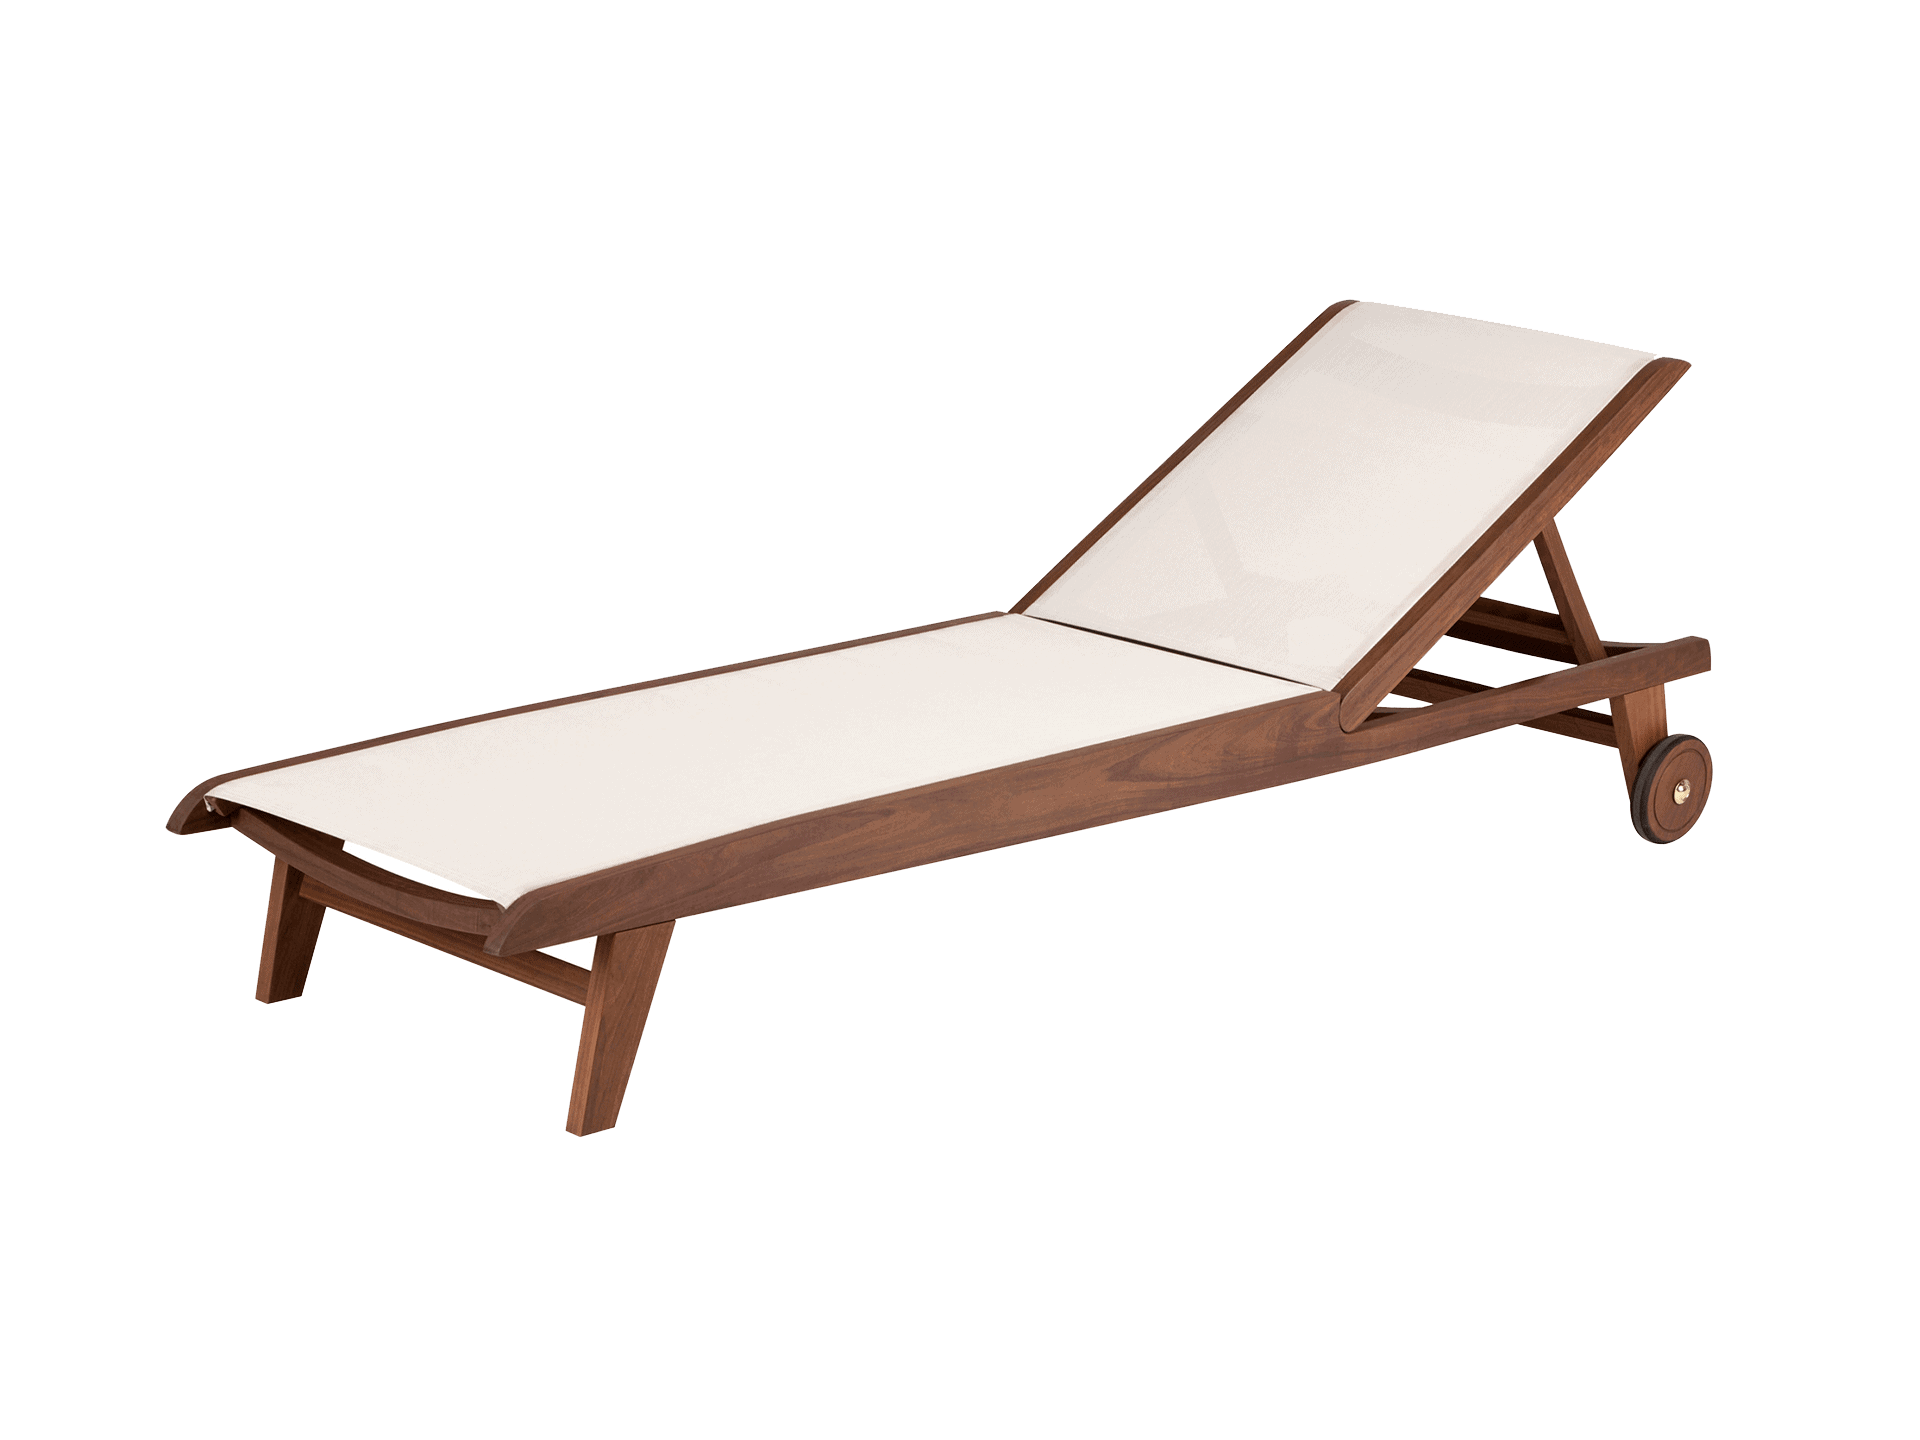 Topaz Natural Sling Chaise Jensen Leisure Furniture